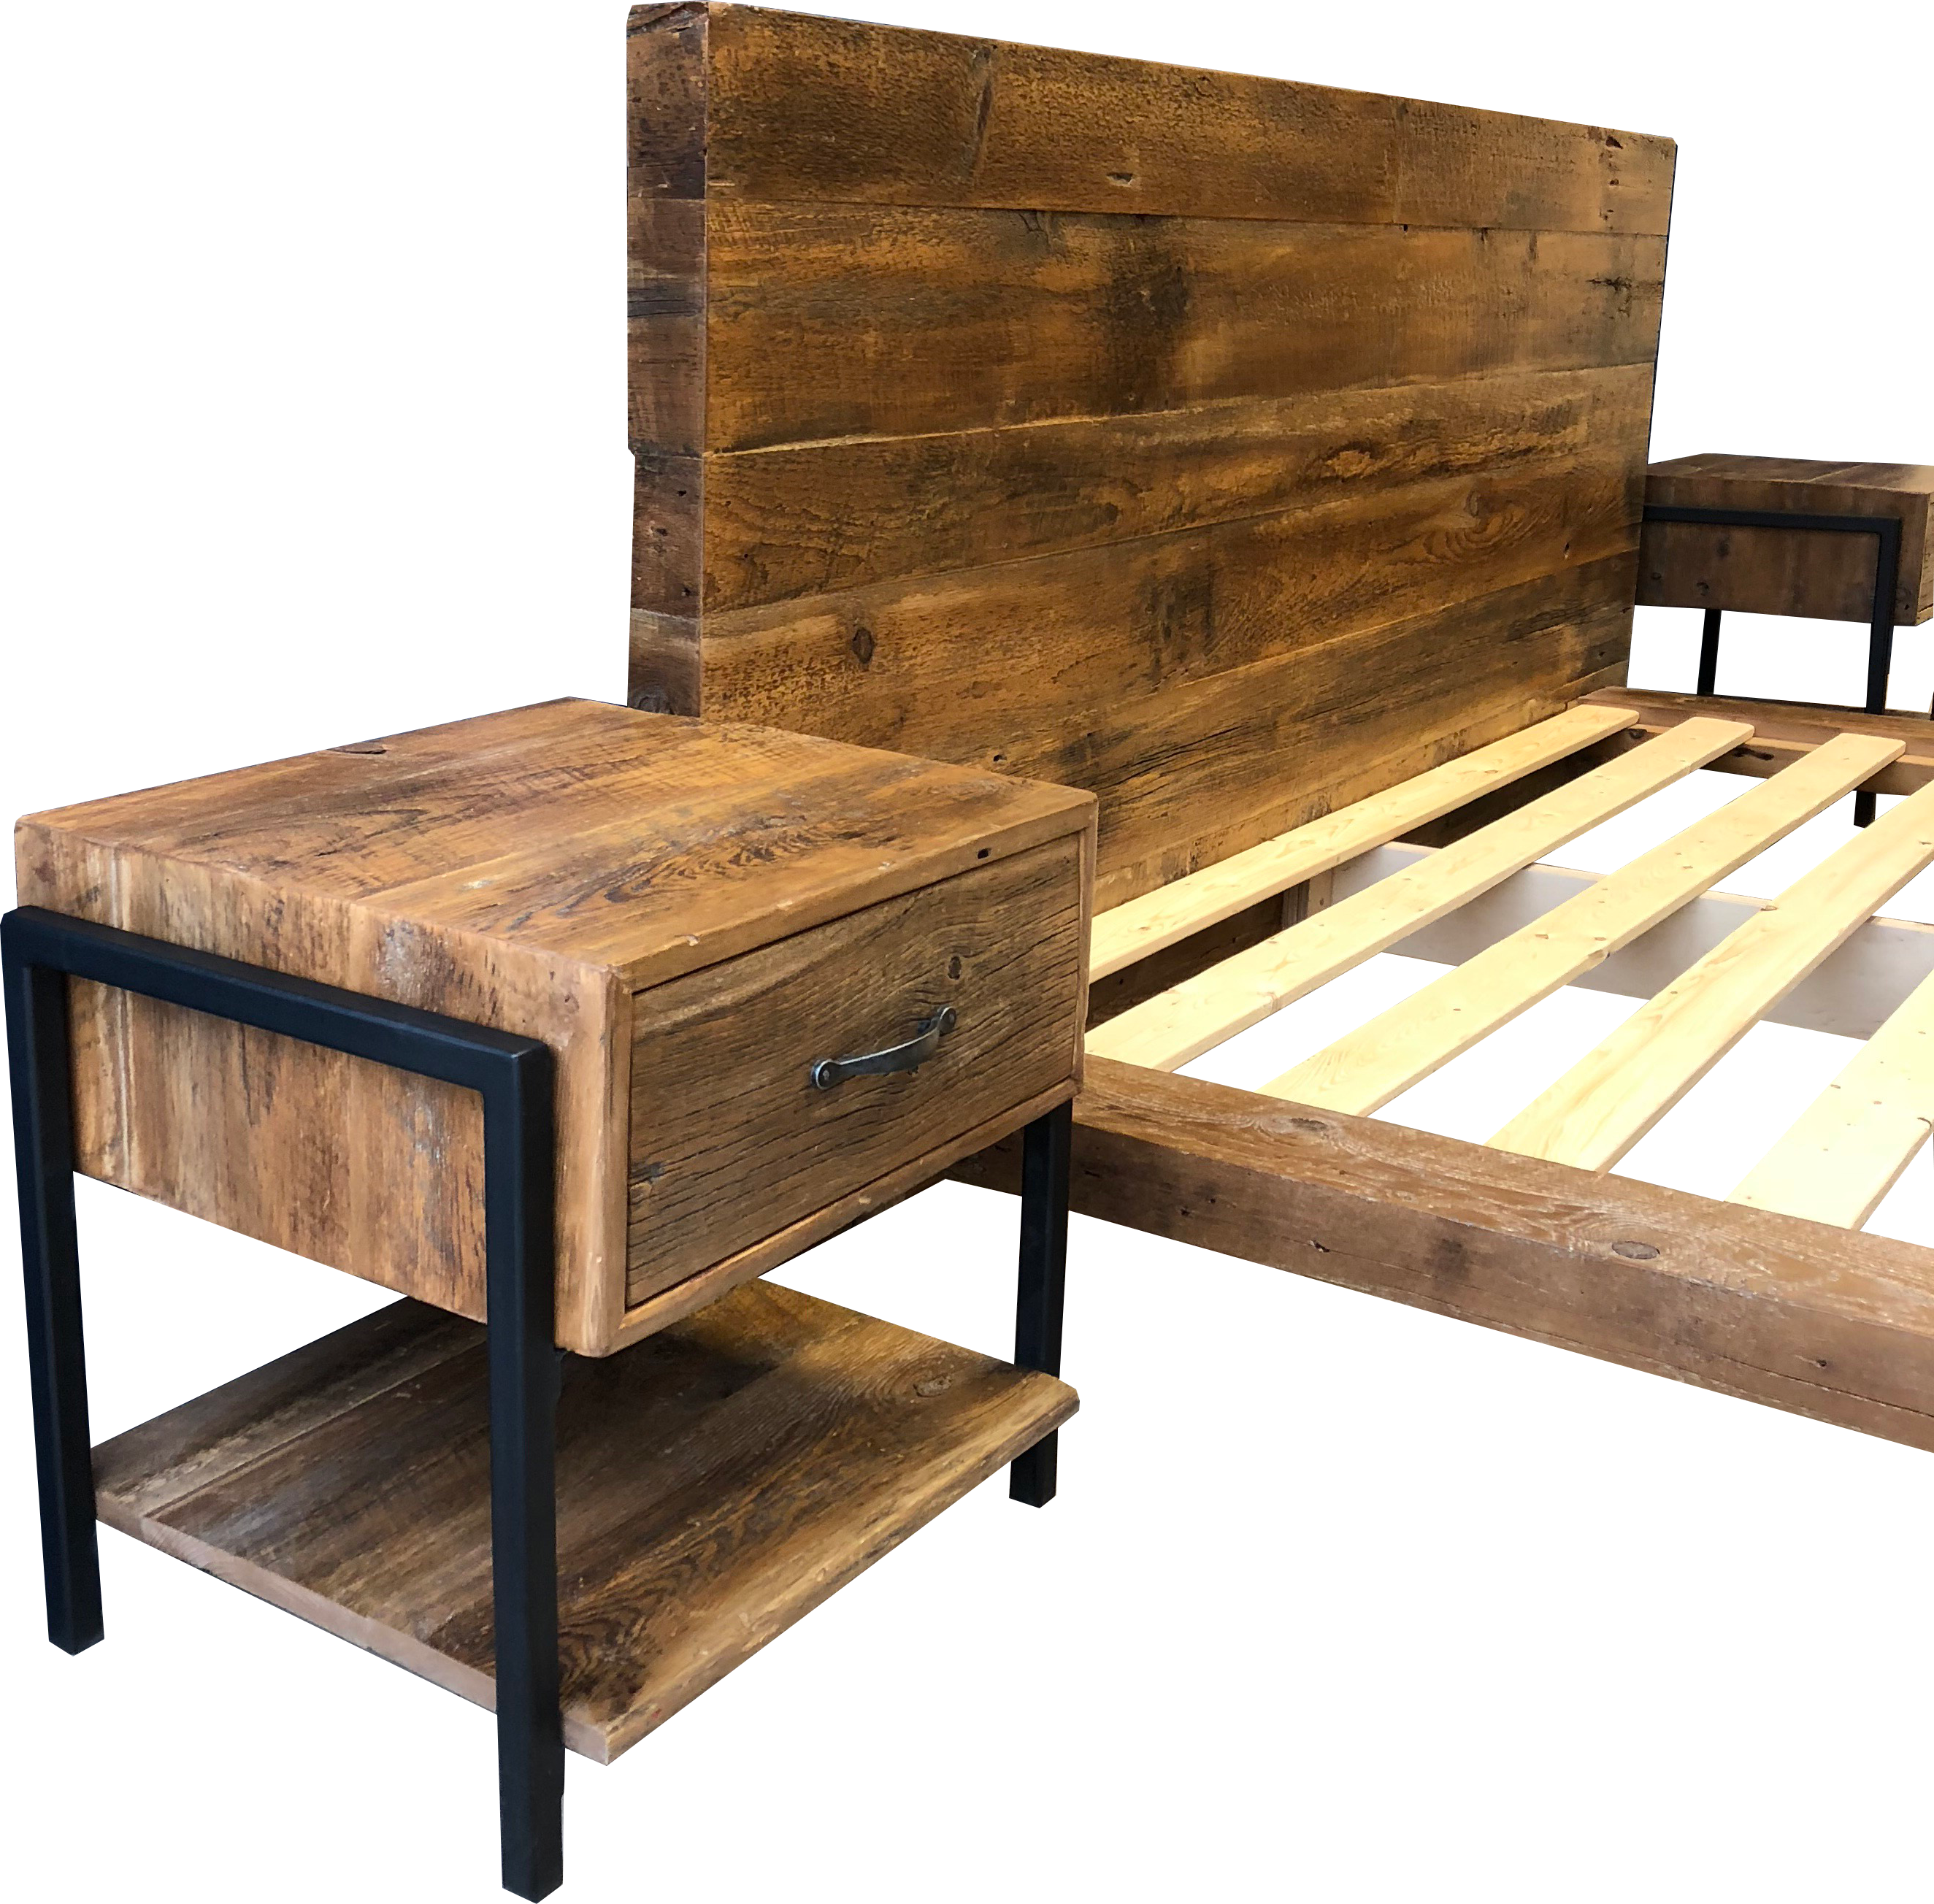 Wood platform png. Reclaimed bed with extended